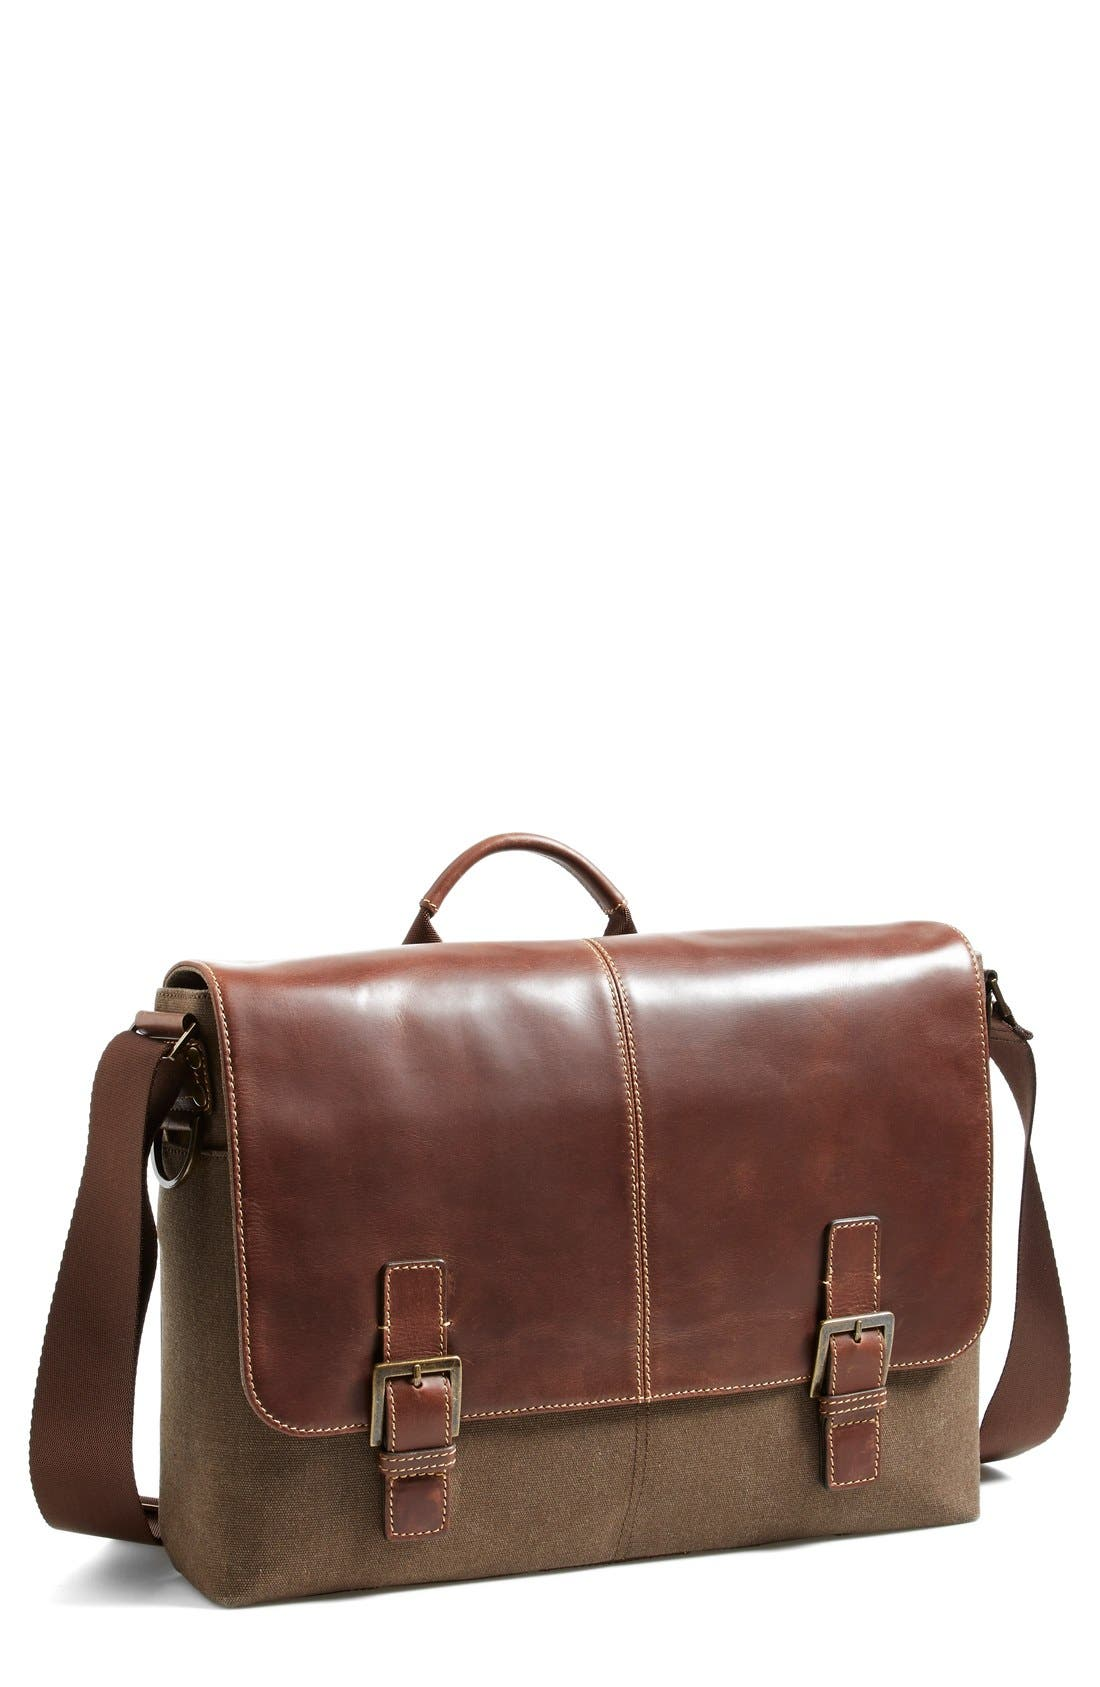 'Bryant' Messenger Bag,                         Main,                         color, HEATHER BROWN